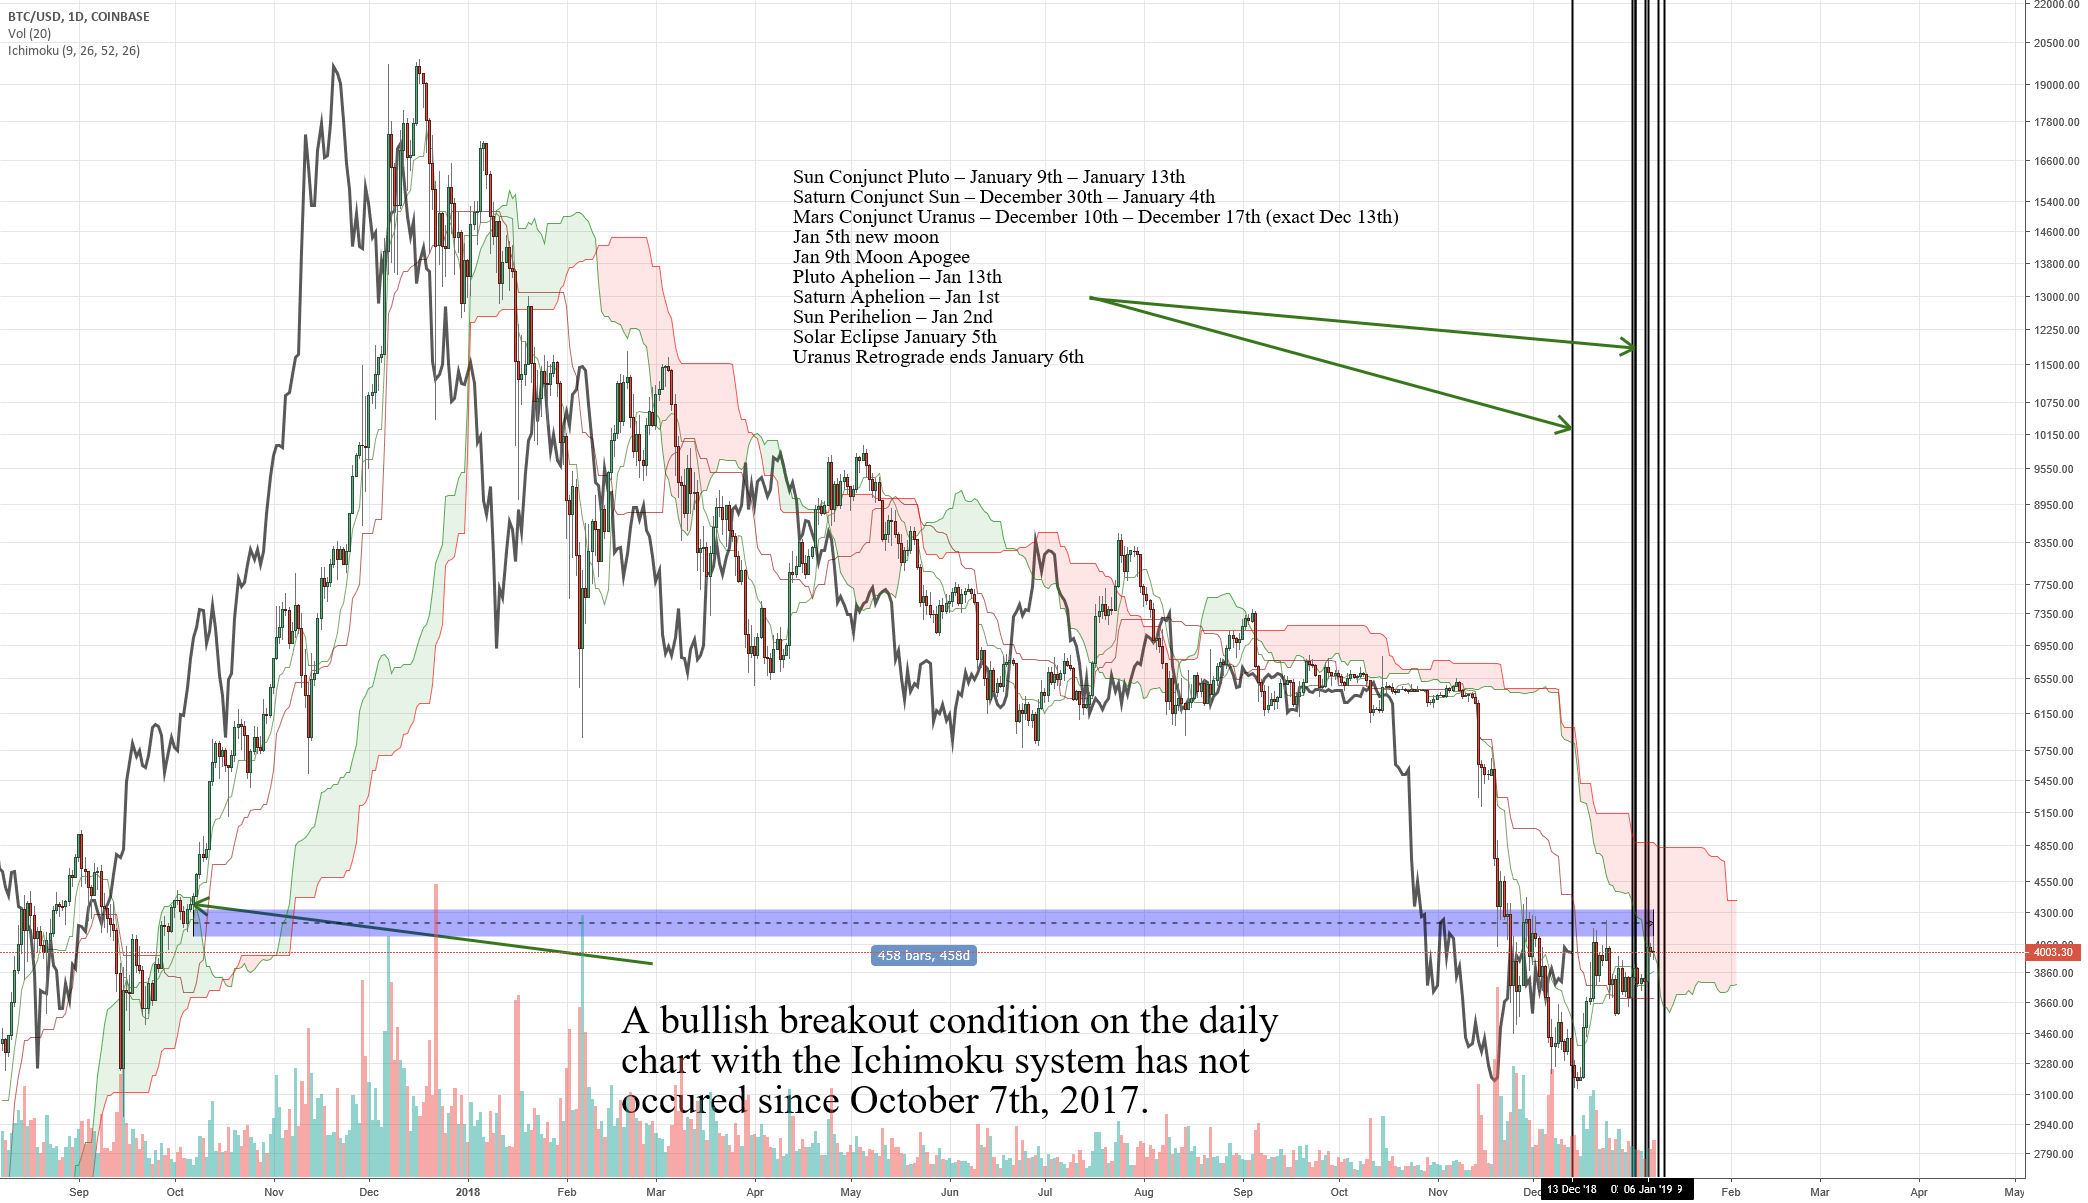 Bitcoin has not had this occur since Oct 7th, 2017 for COINBASE:BTCUSD by captainquenta ...